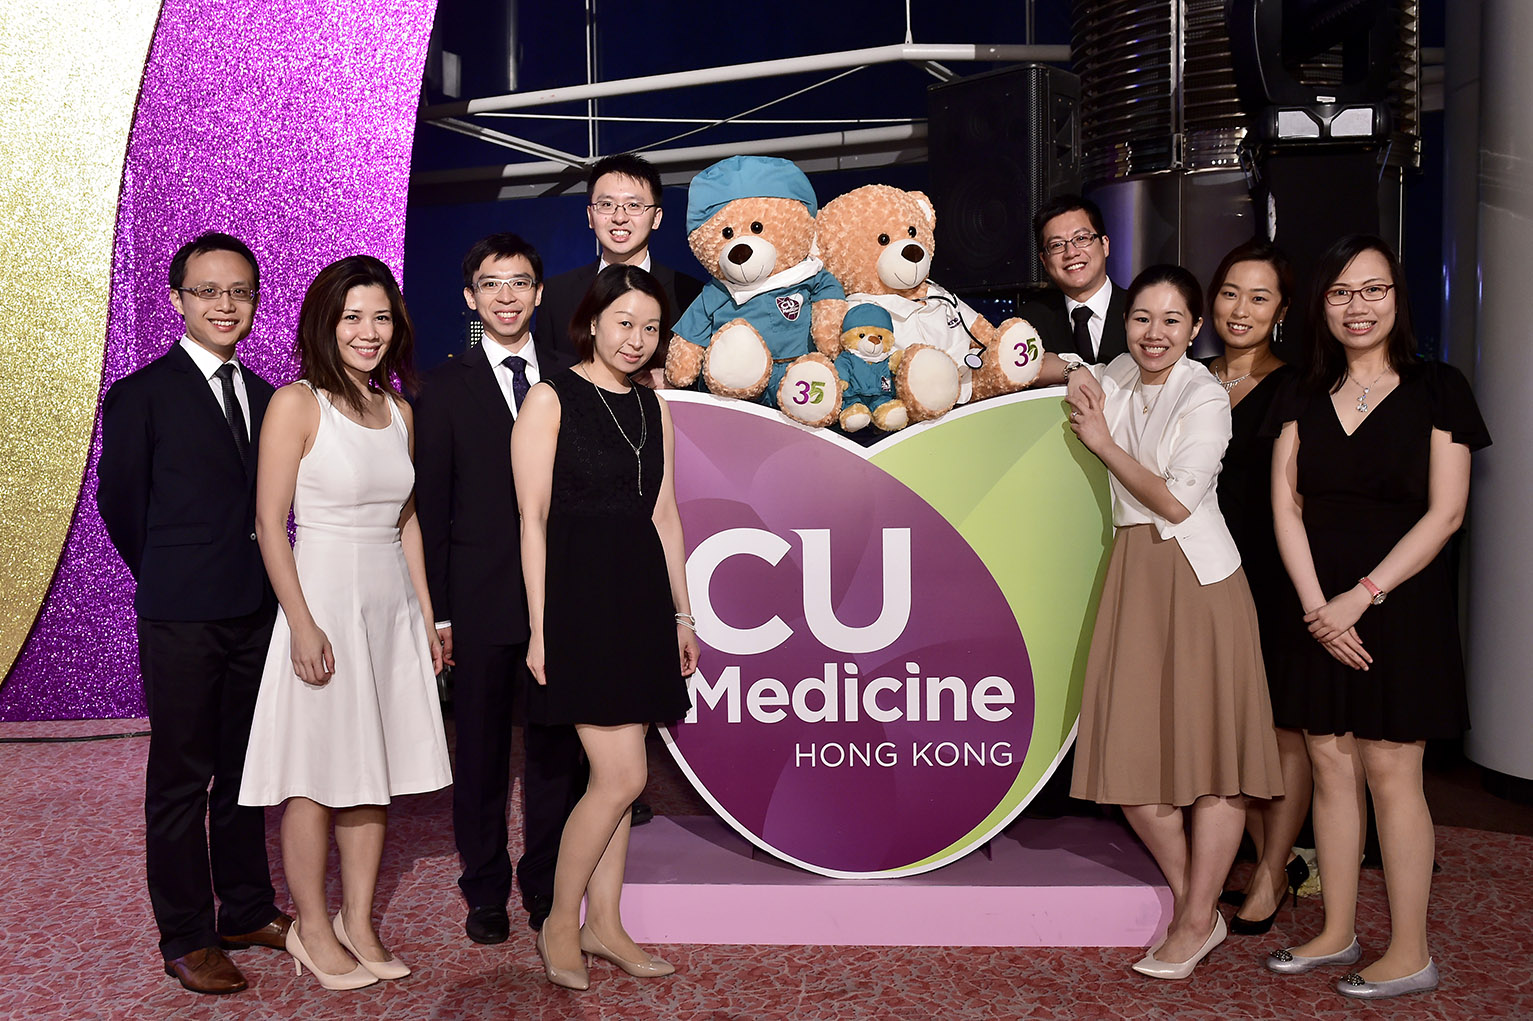 Guests take photo in front of the Faculty logo with medic and surgeon bears.